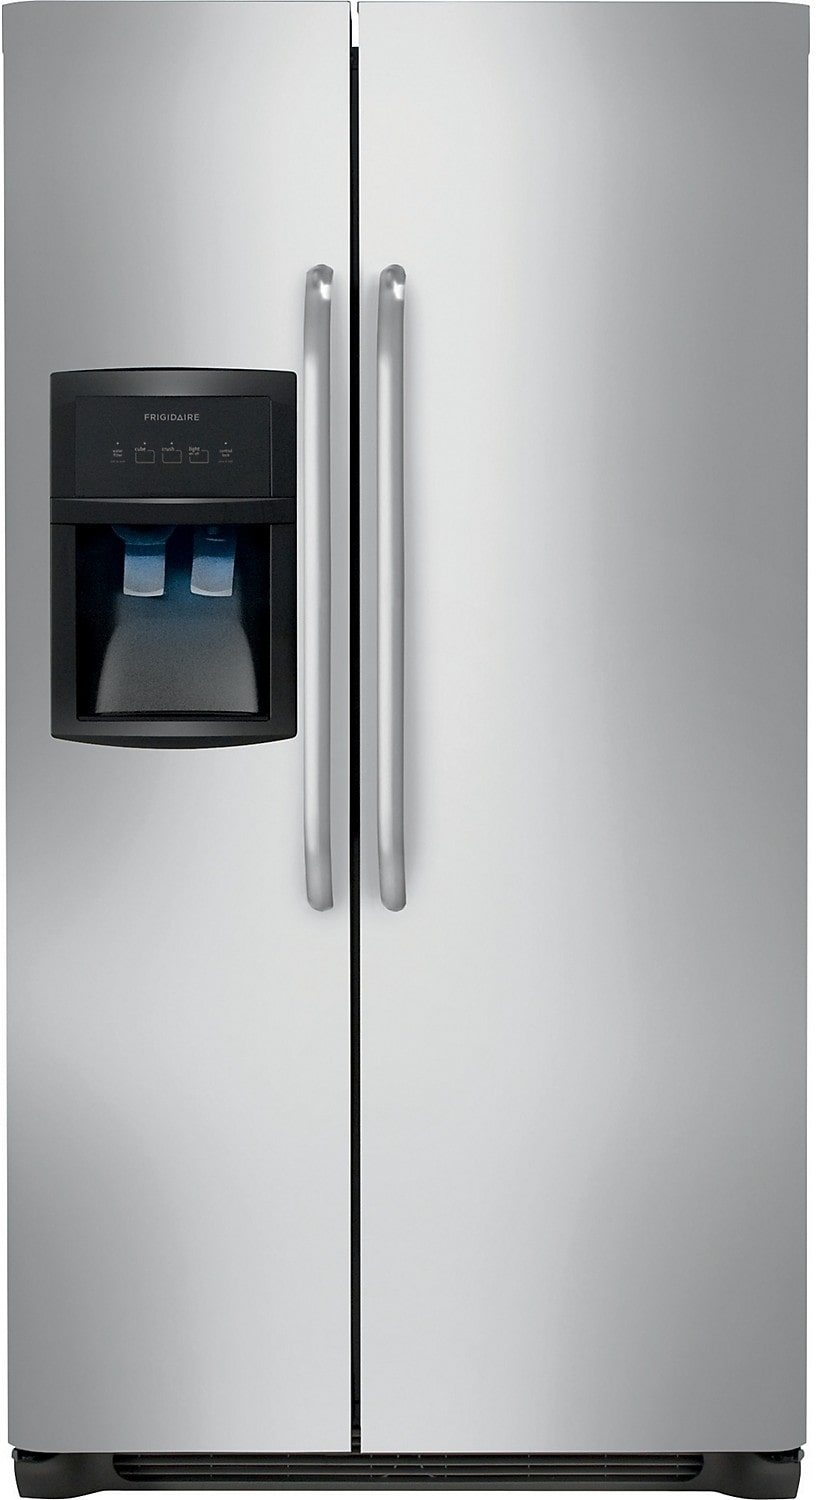 Refrigerators and Freezers - Frigidaire 23 Cu. Ft. Standard-Depth Side-by-Side Refrigerator - Stainless Steel